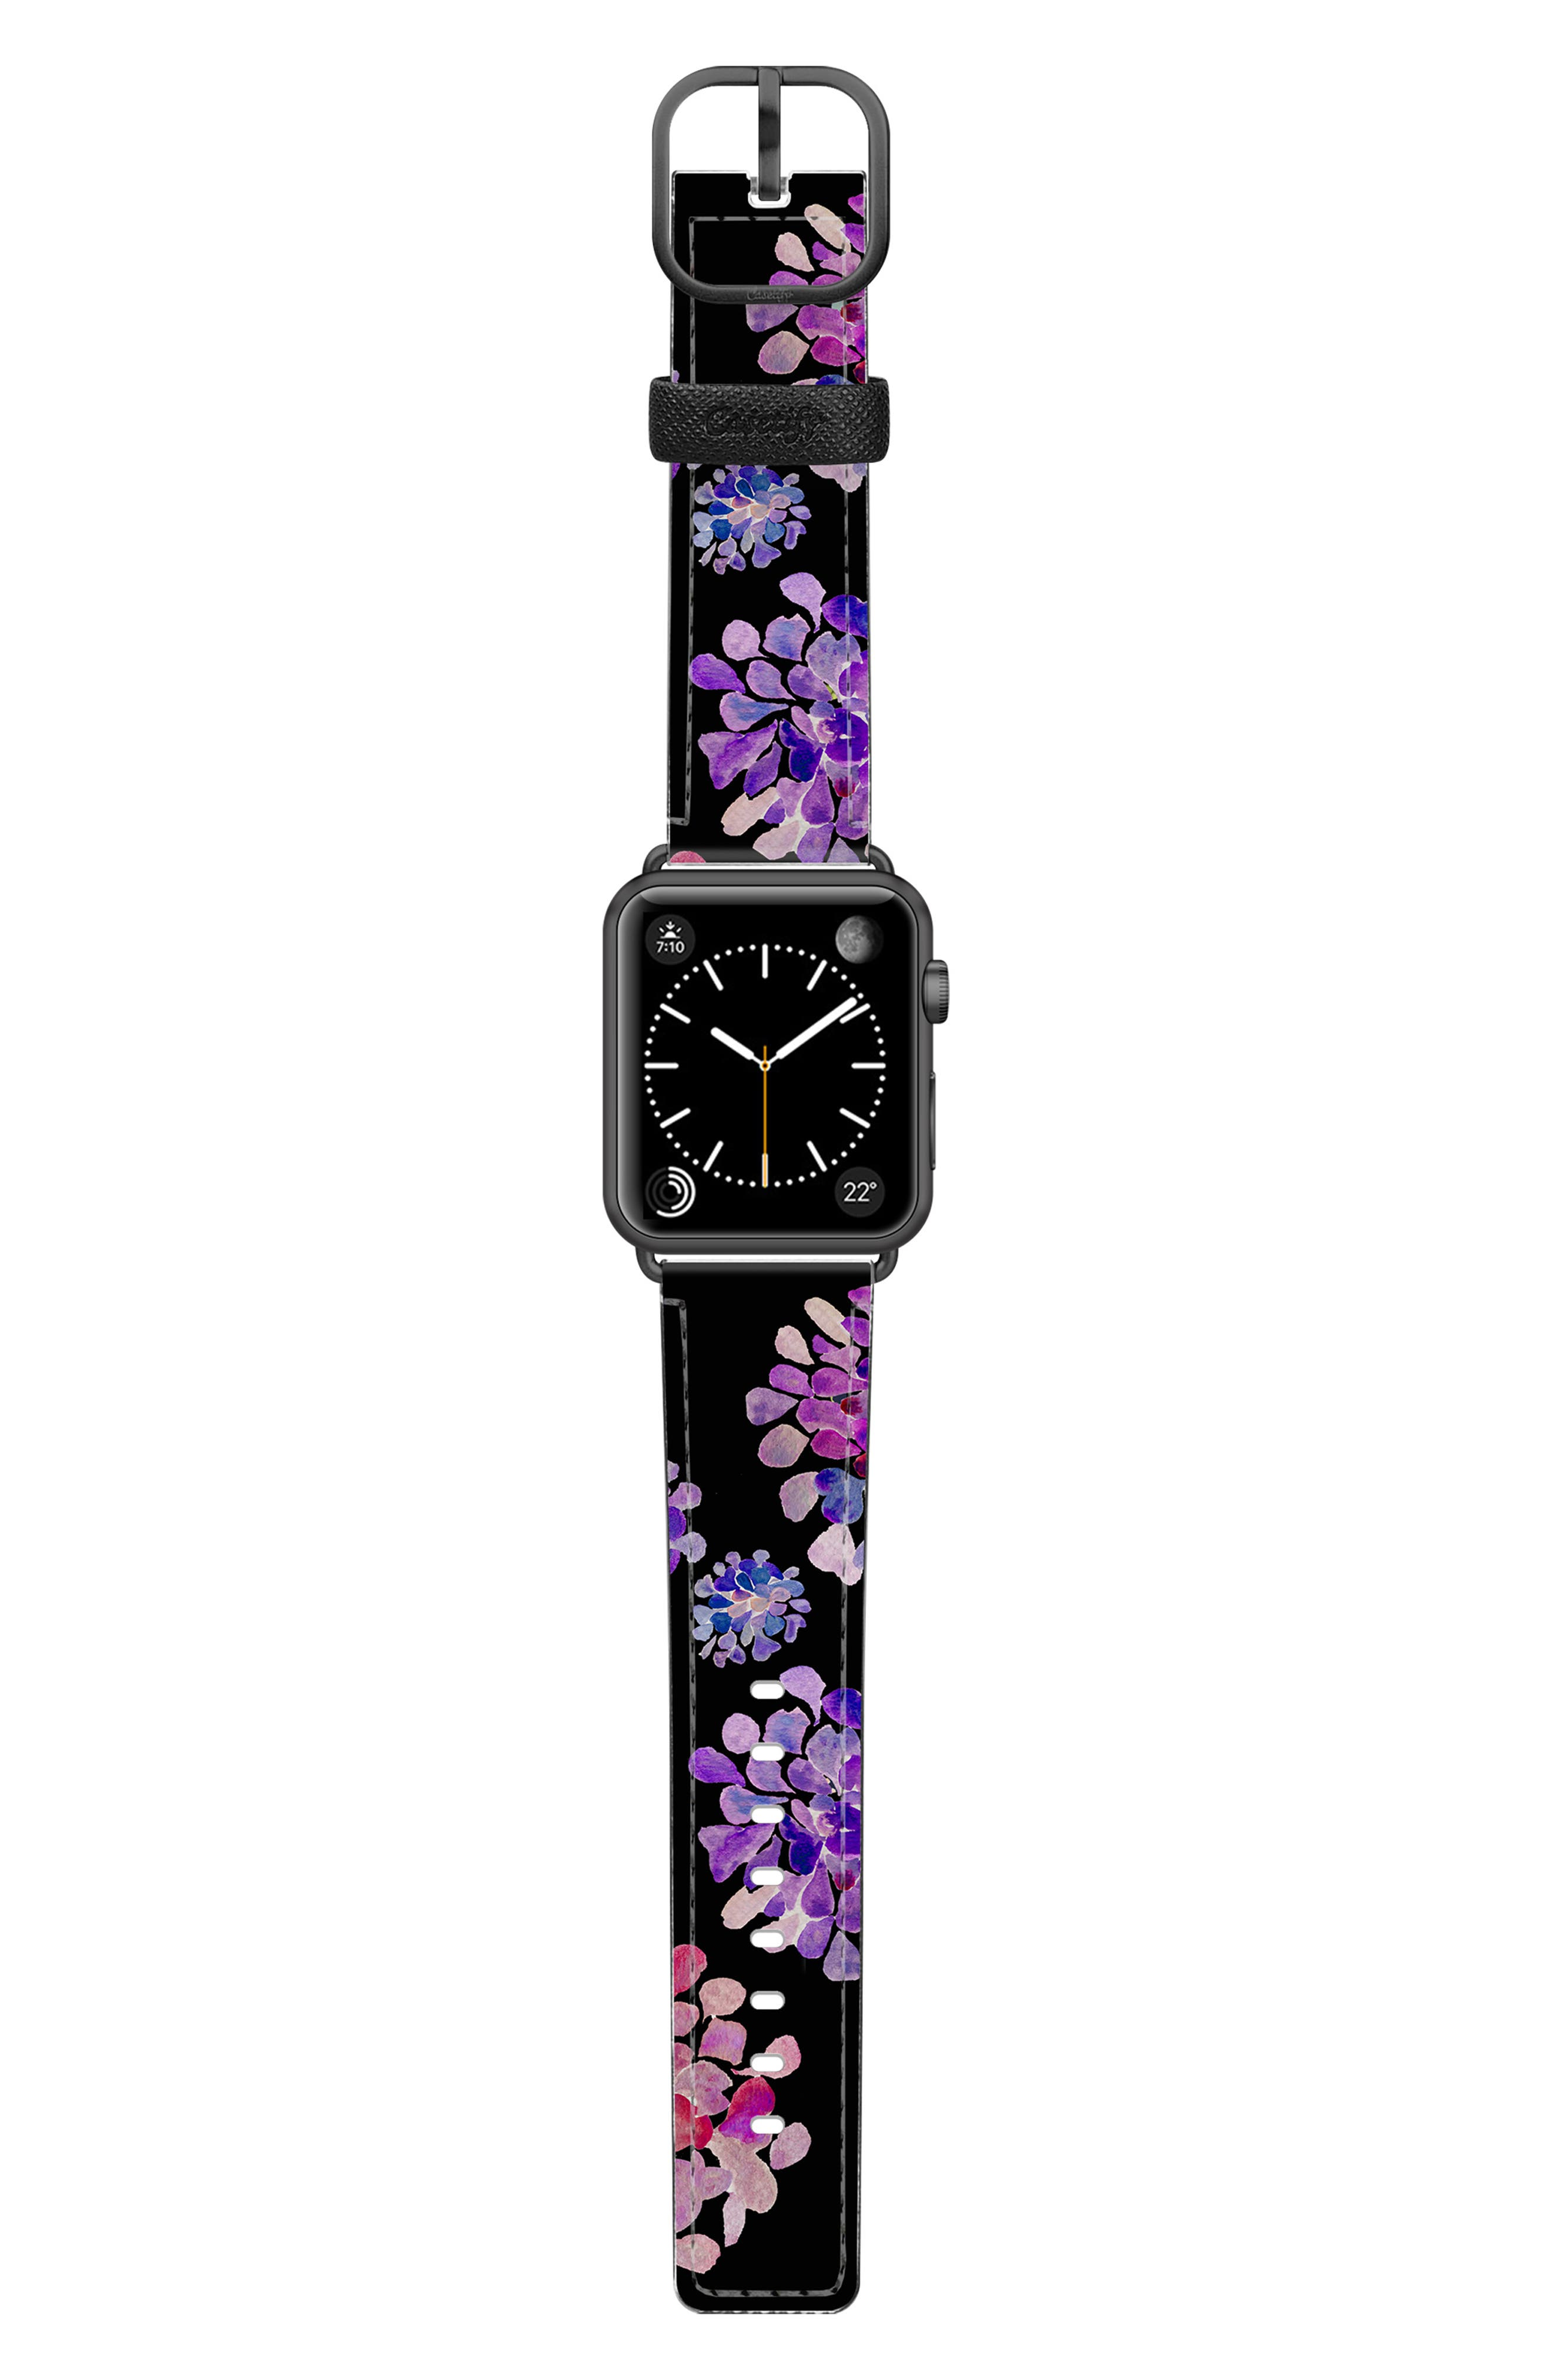 SAFFIANO PURPLE FLOWERS FAUX LEATHER APPLE WATCH STRAP